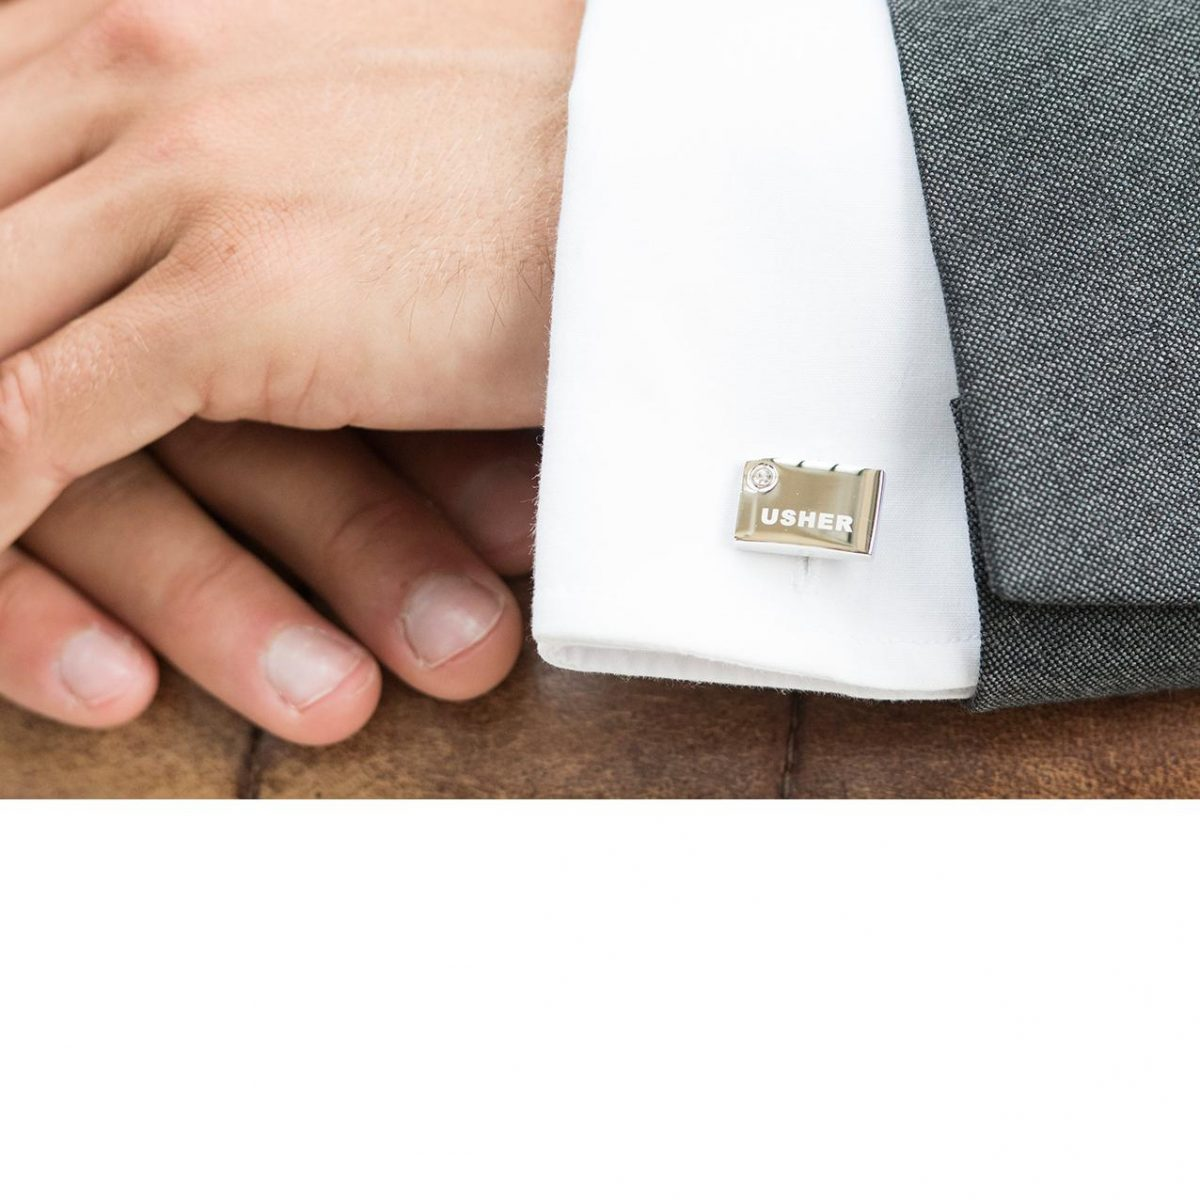 Ivory and Co Usher Cufflinks